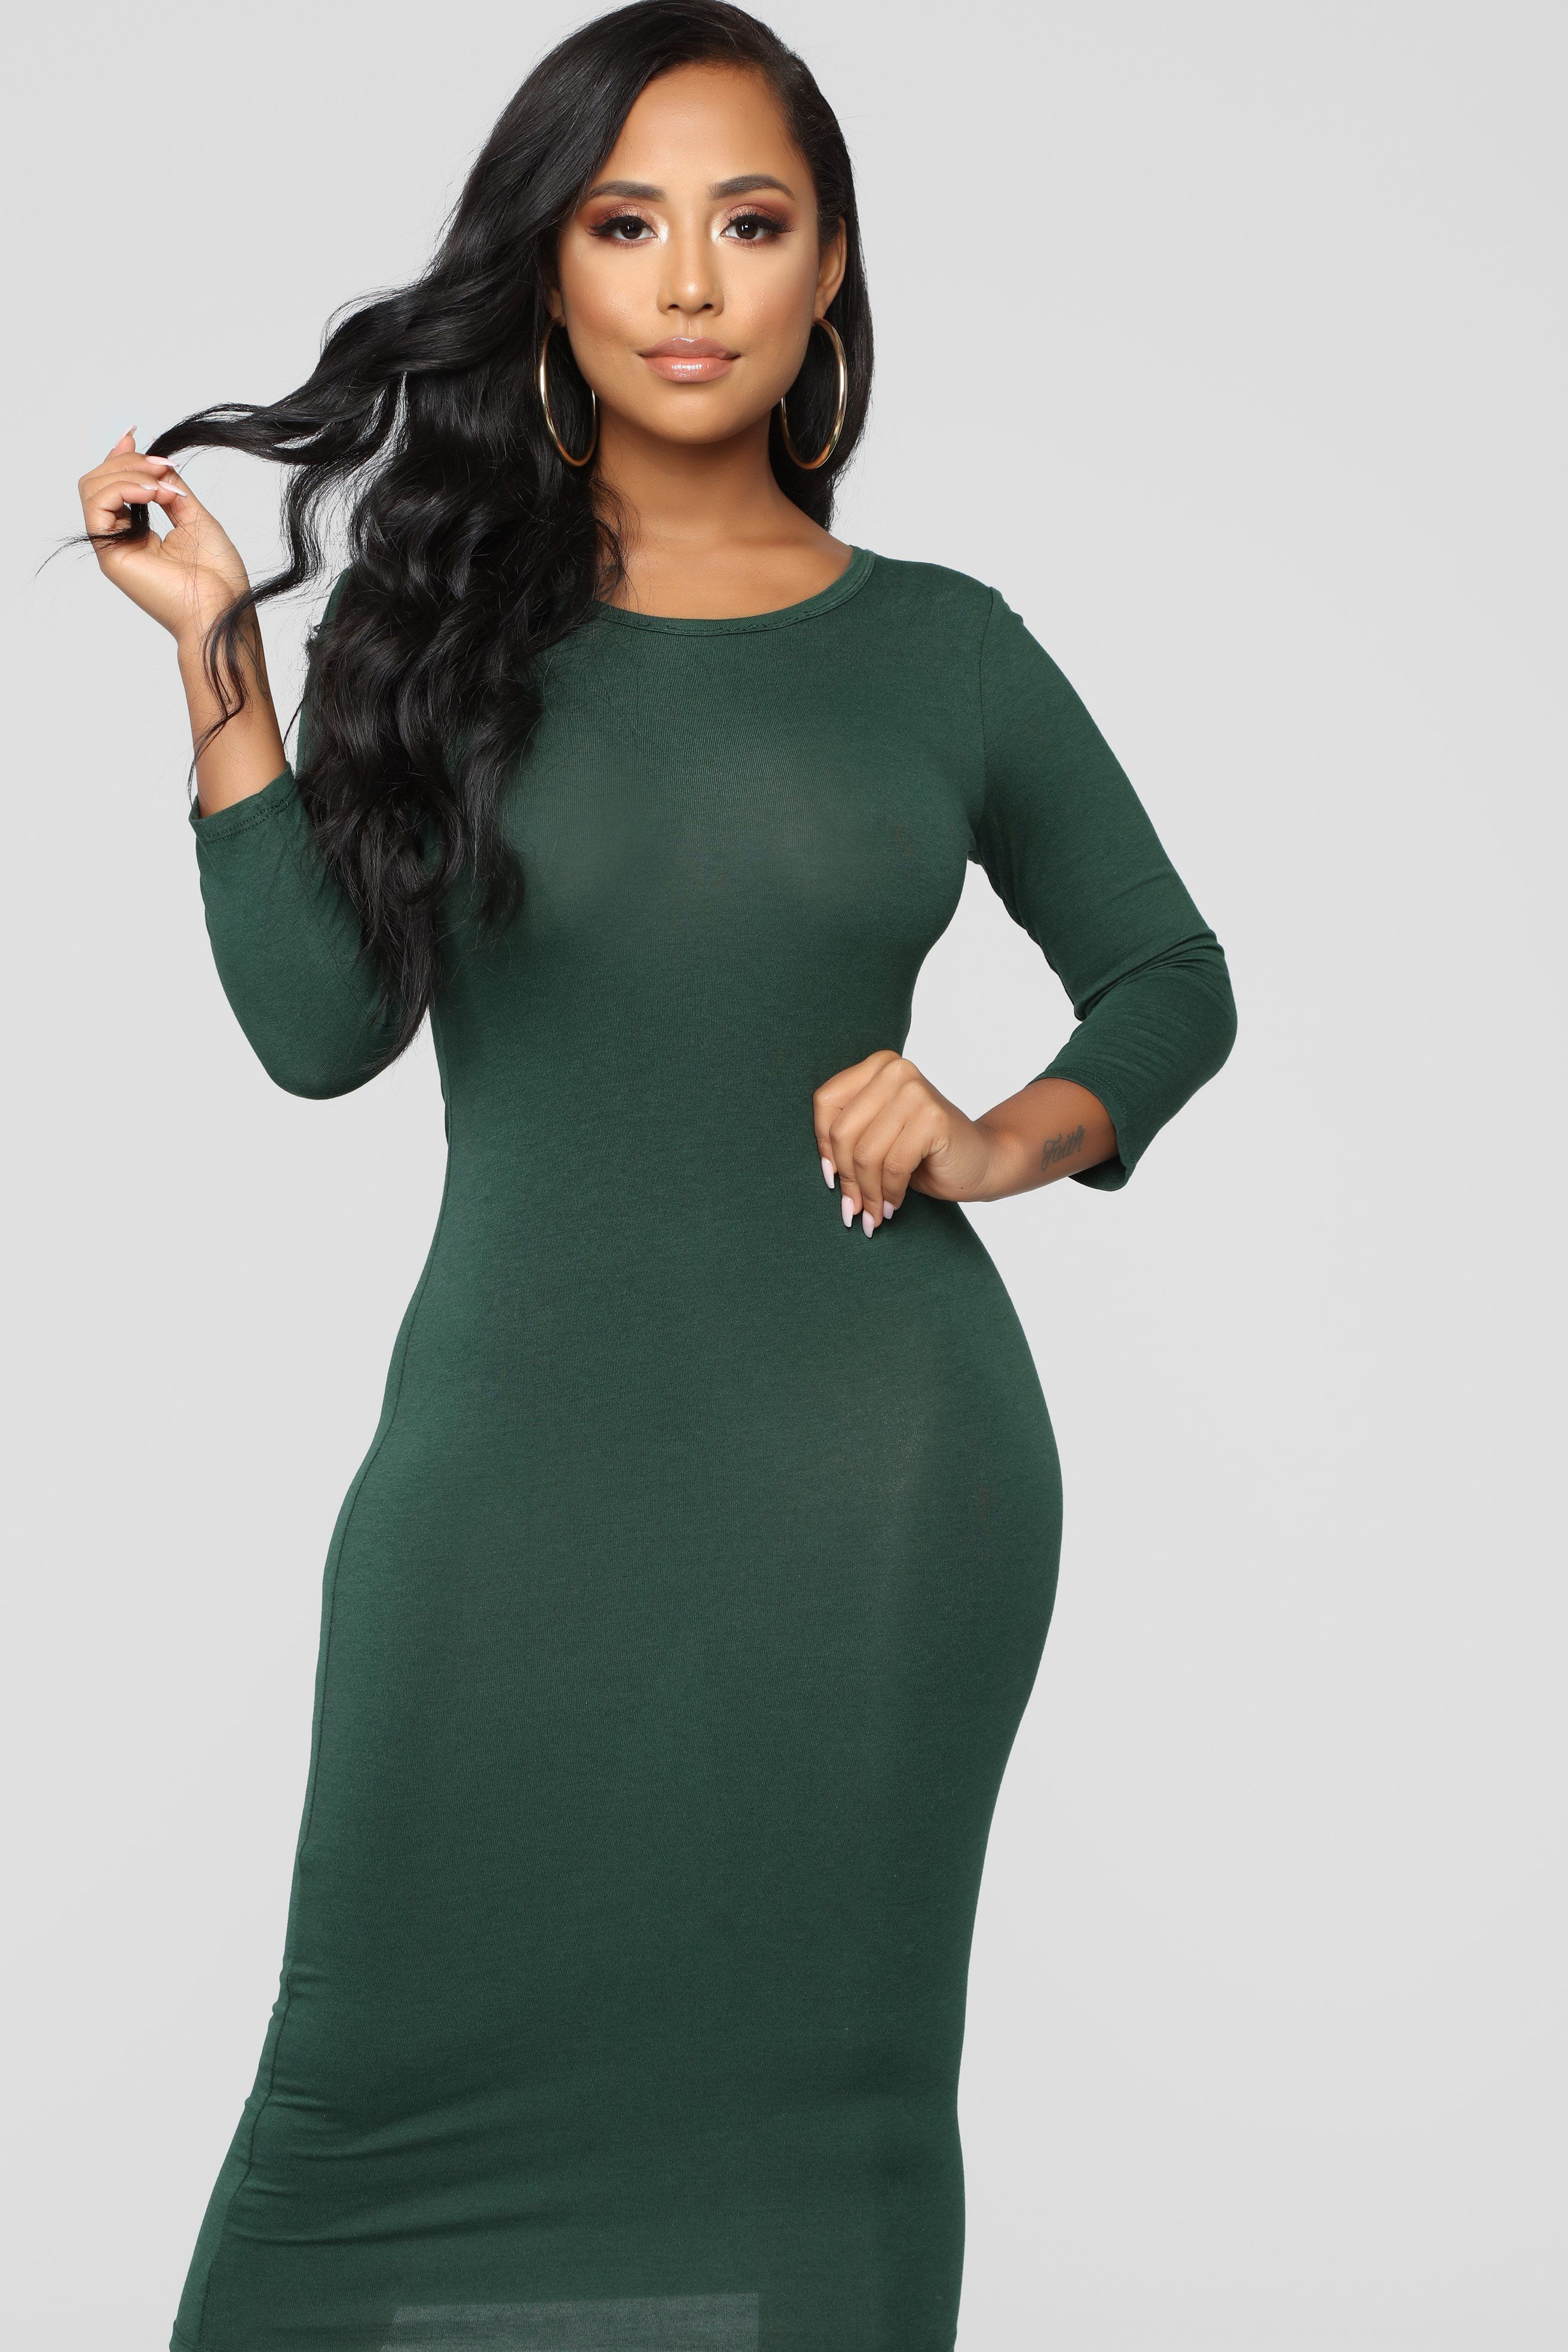 Full Coverage Maxi Dress Olive (With images) Simple